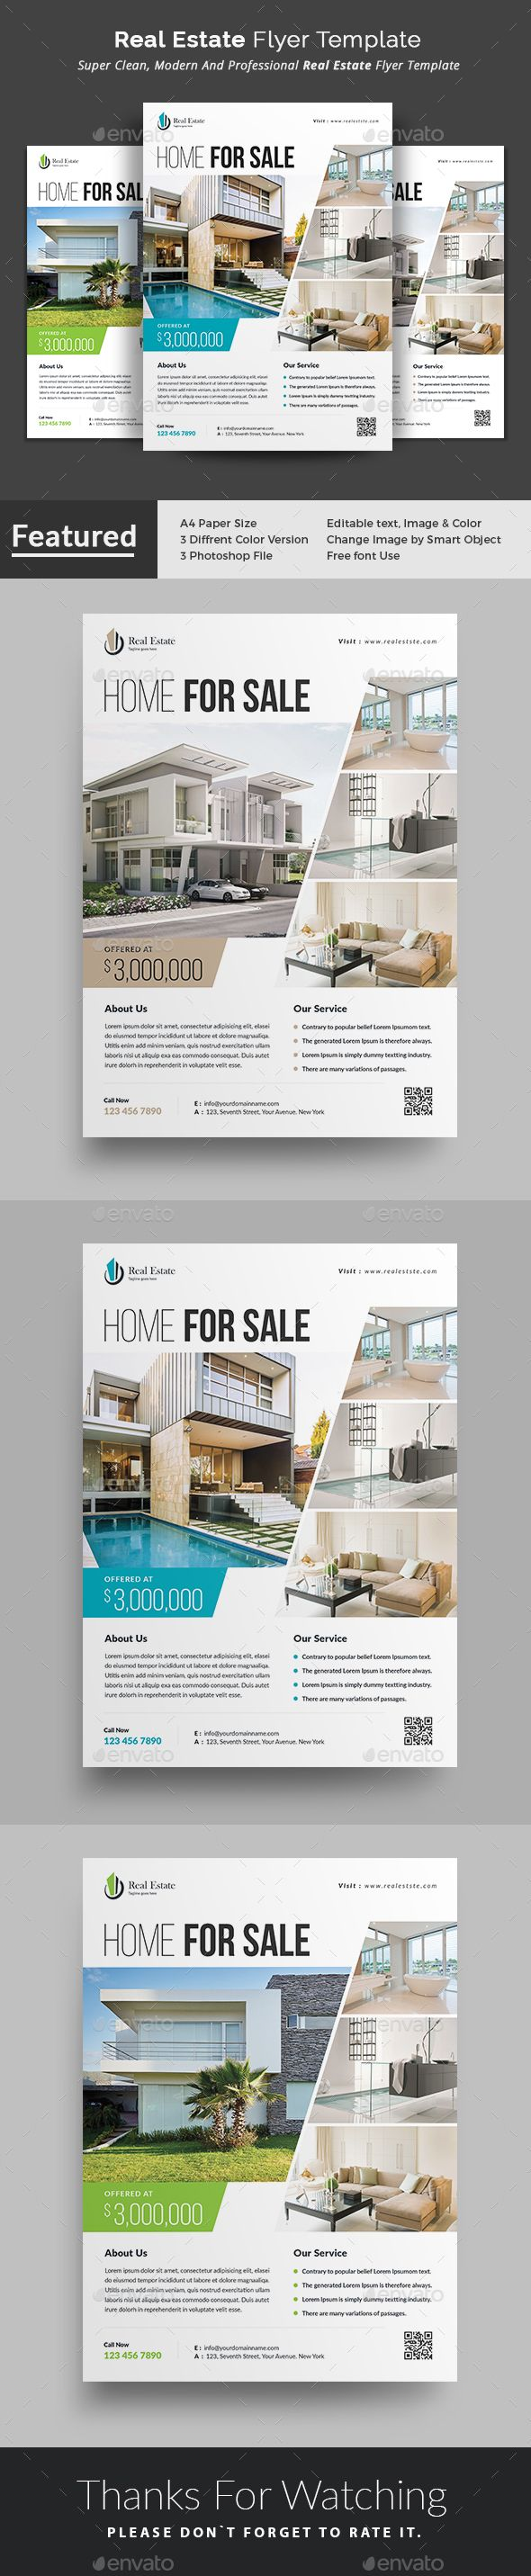 212 best # Real Estate Flyer Templates Designs images on Pinterest ...